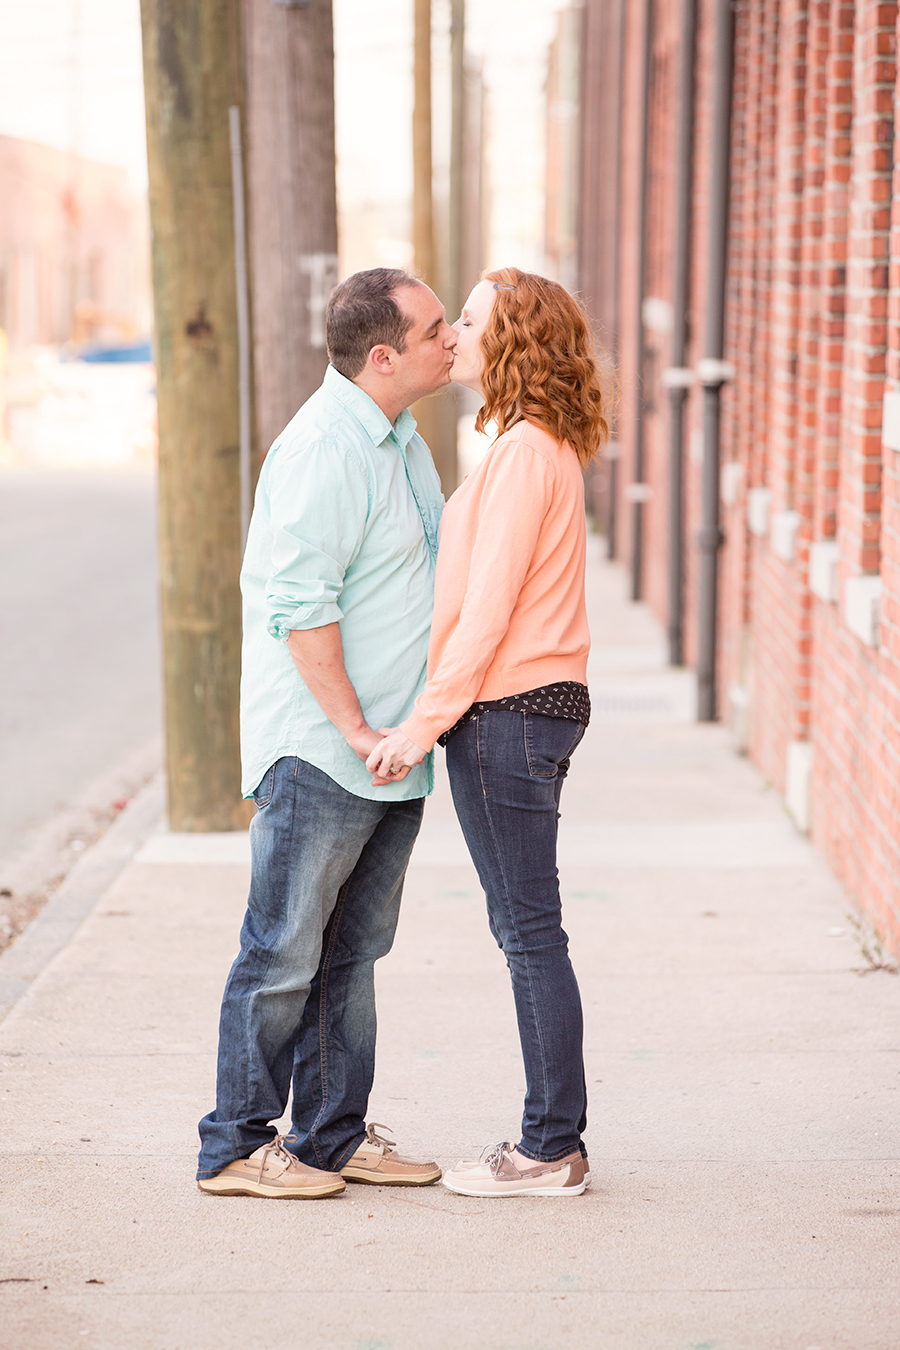 Jeff  Rachaels Carytown Engagement Shoot - Image Property of www.j-dphoto.com